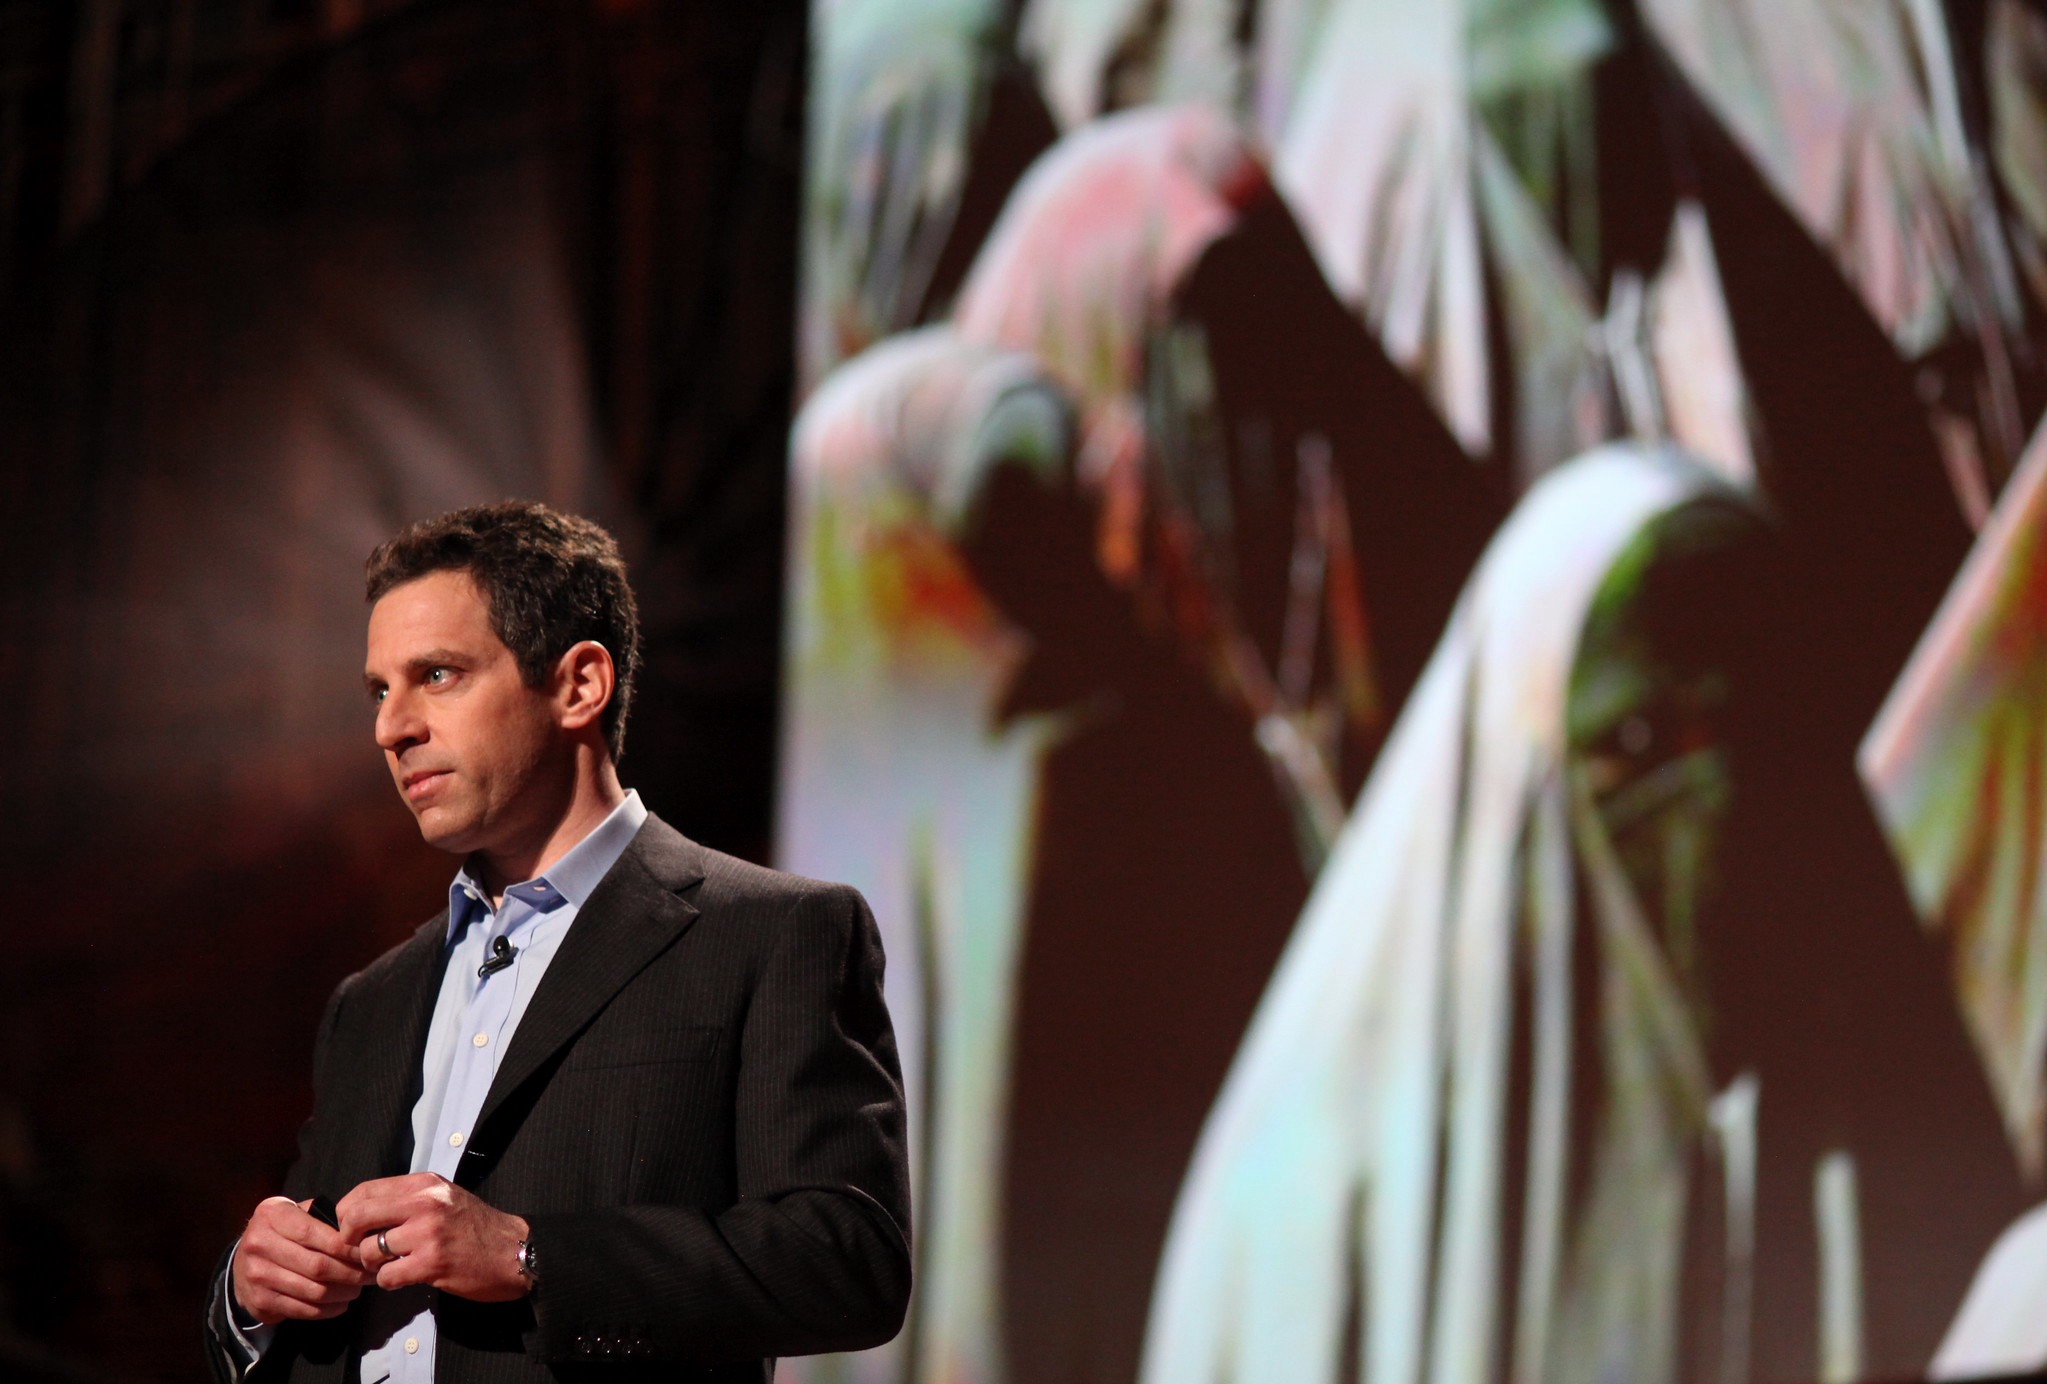 Sam Harris give a TED Talk about morality.